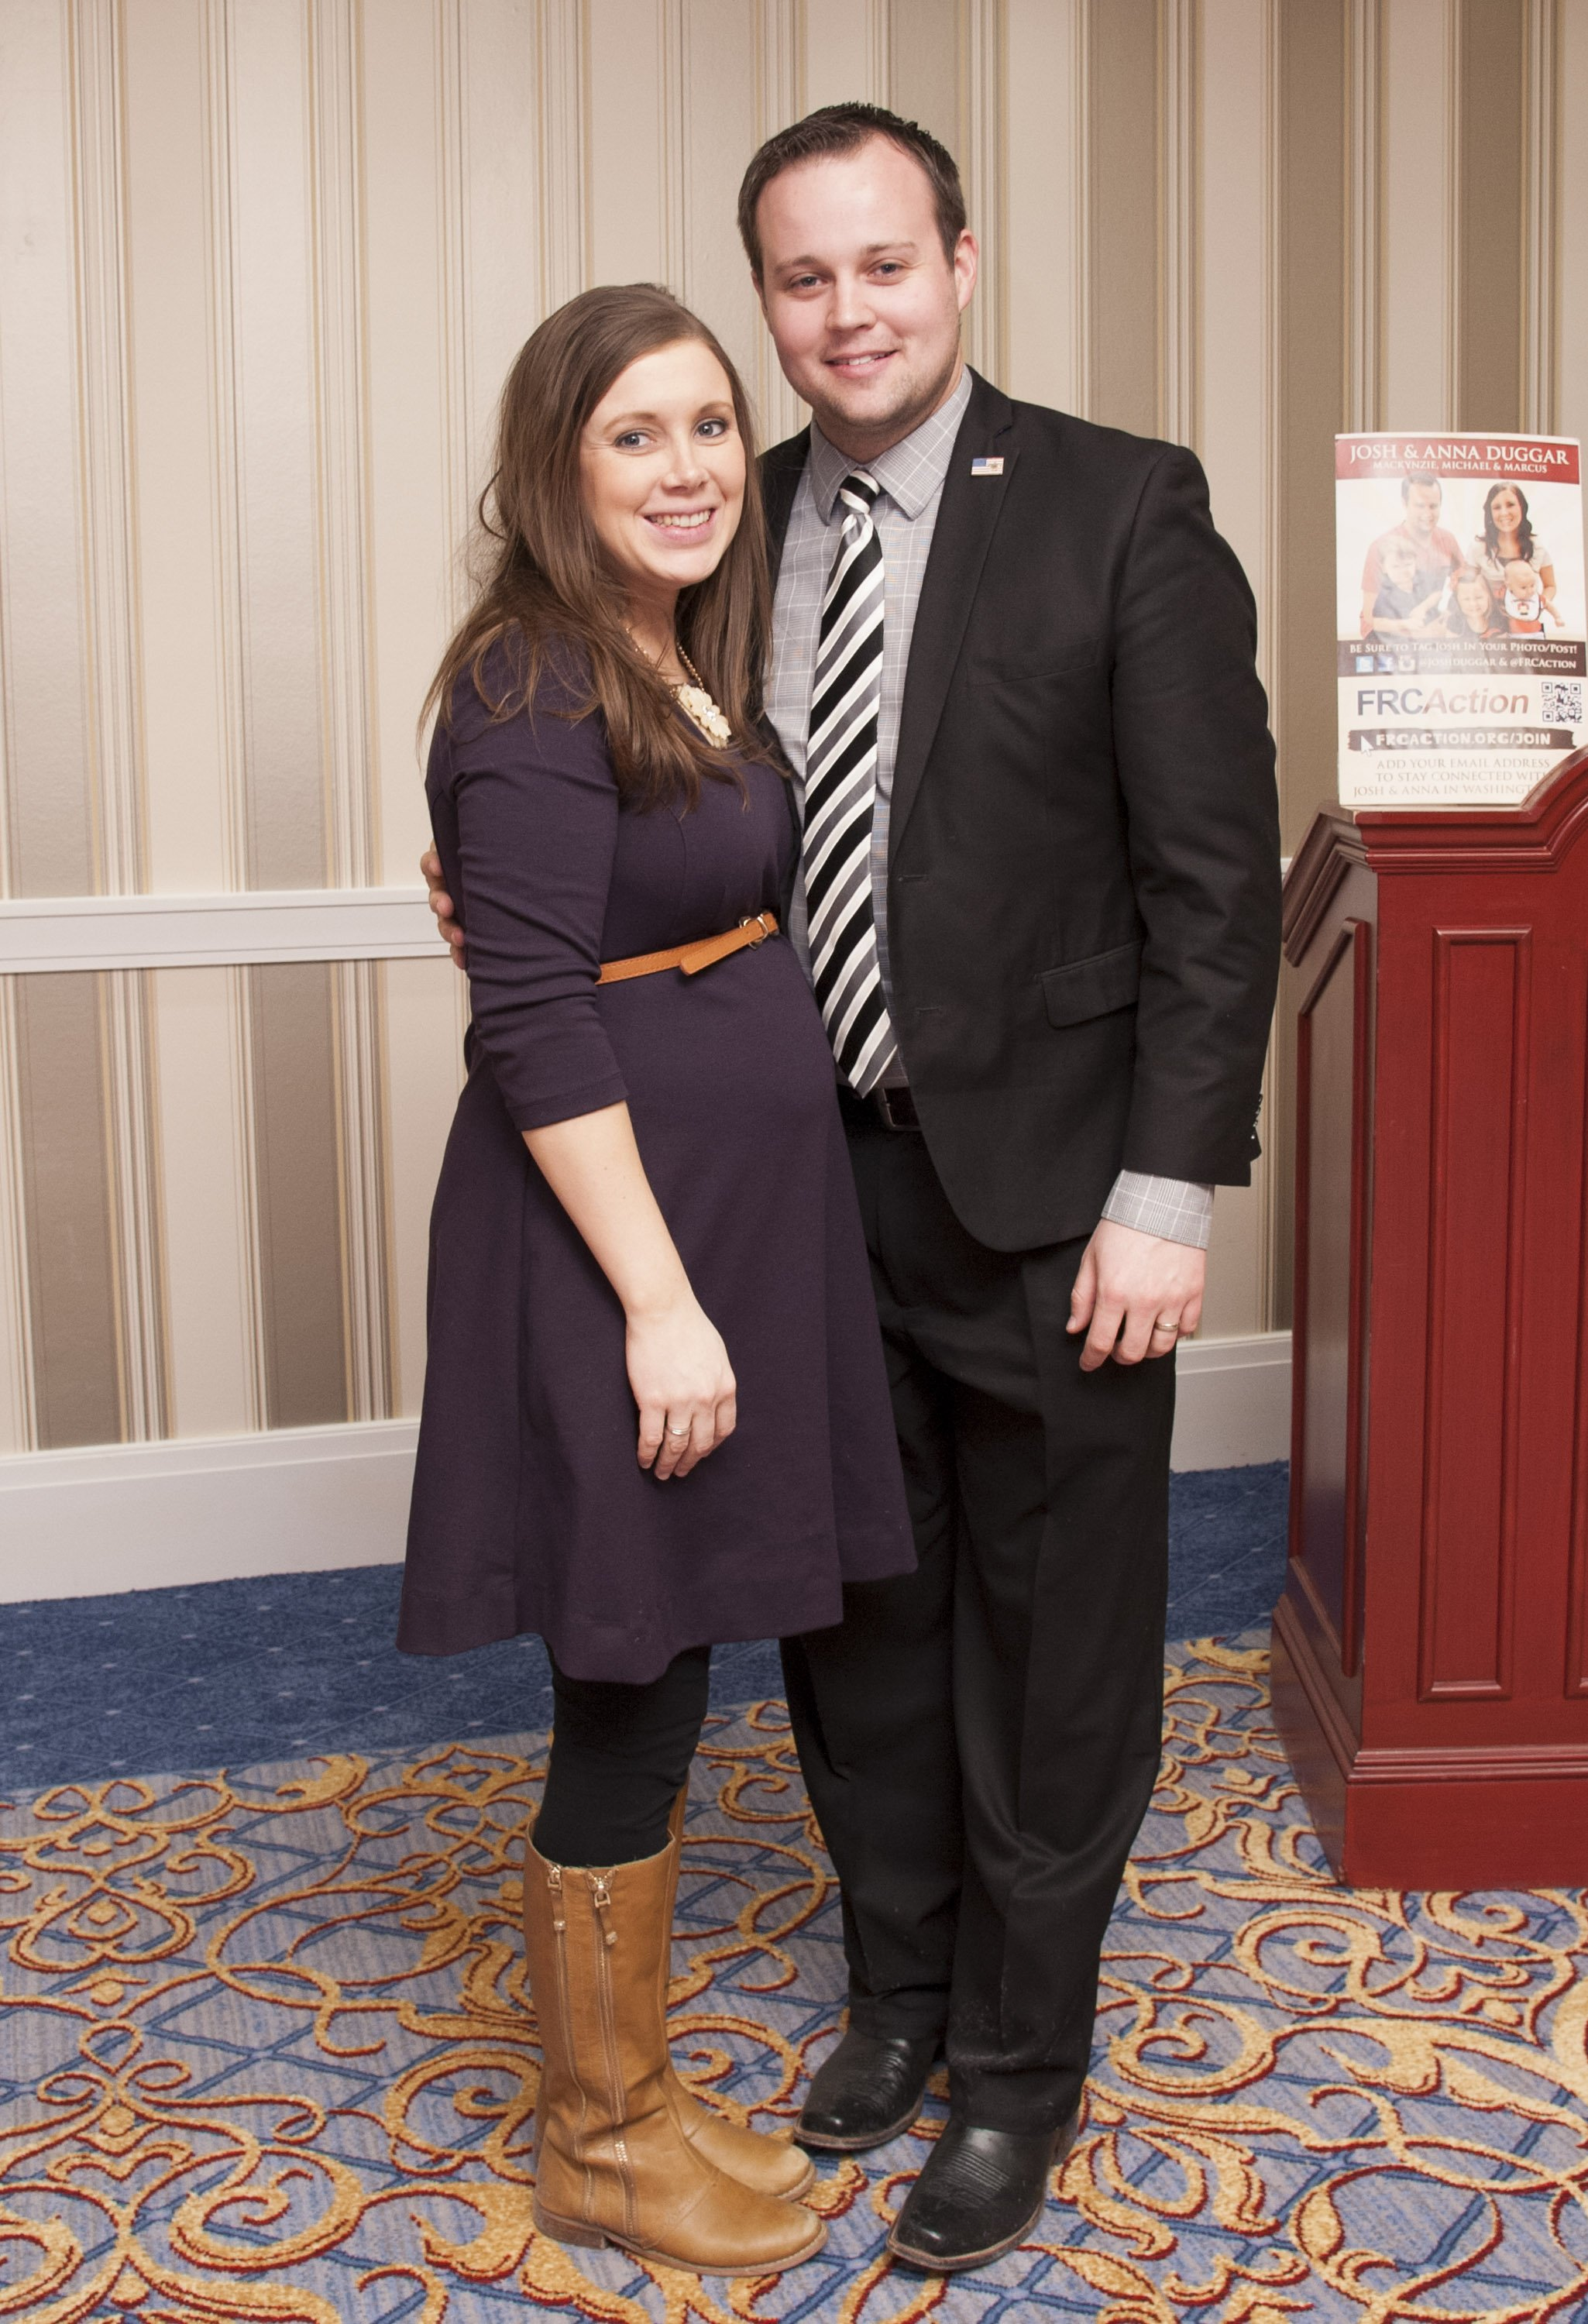 Anna and Josh Duggar pictured at the 42nd annual Conservative Political Action Conference, 2015, Maryland. | Photo: Getty Images